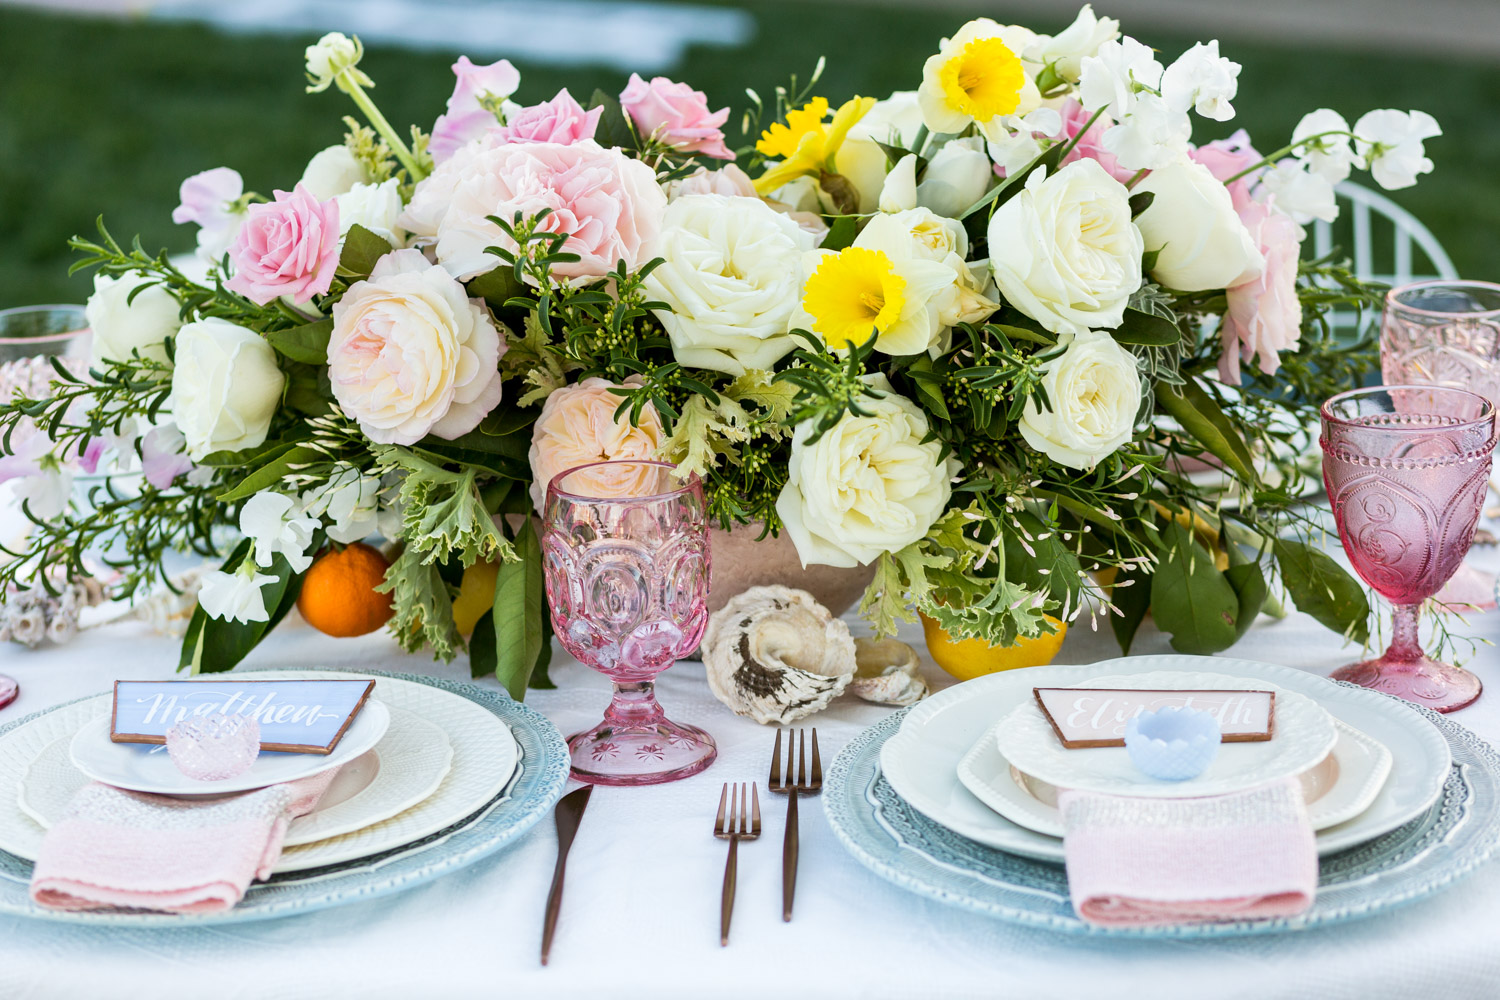 Wedding reception floral design arrangement with white and pink roses greenery and yellow daffodils